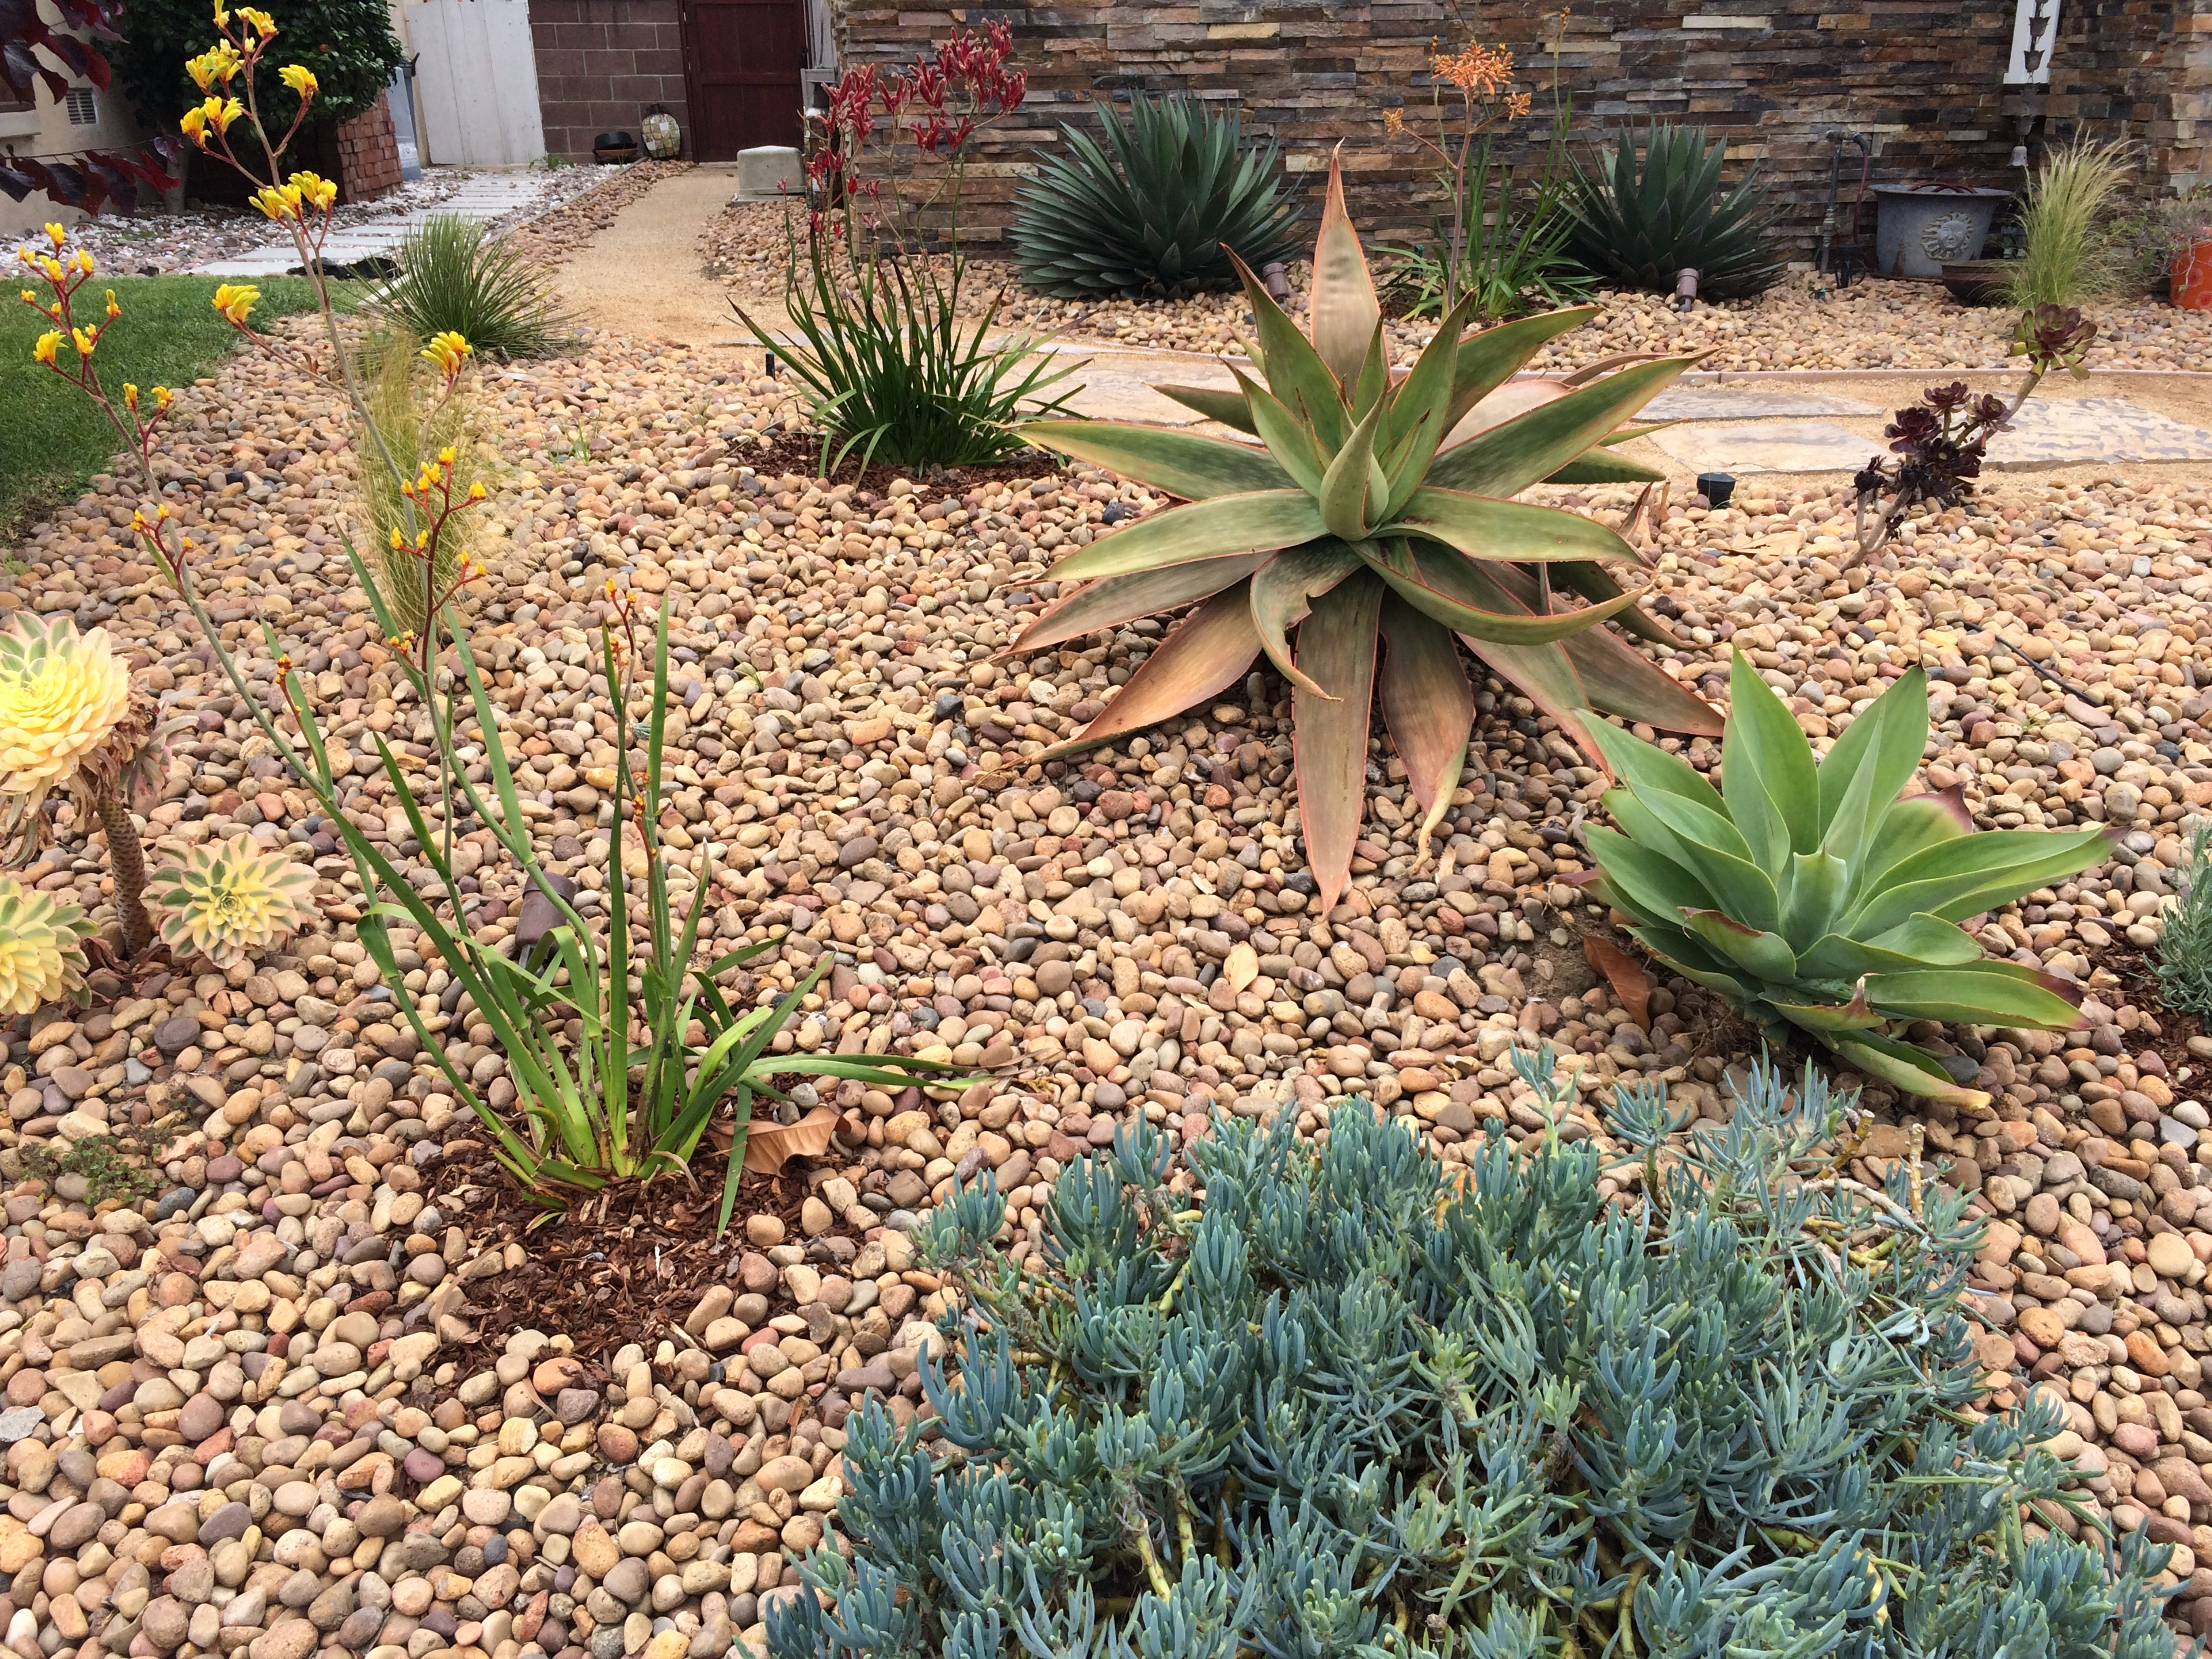 A Common Misconception Is That Drought Tolerant Or Xeriscape Means A Yard  With Brown Or Maybe Green Plants And Ordinary Succulents.